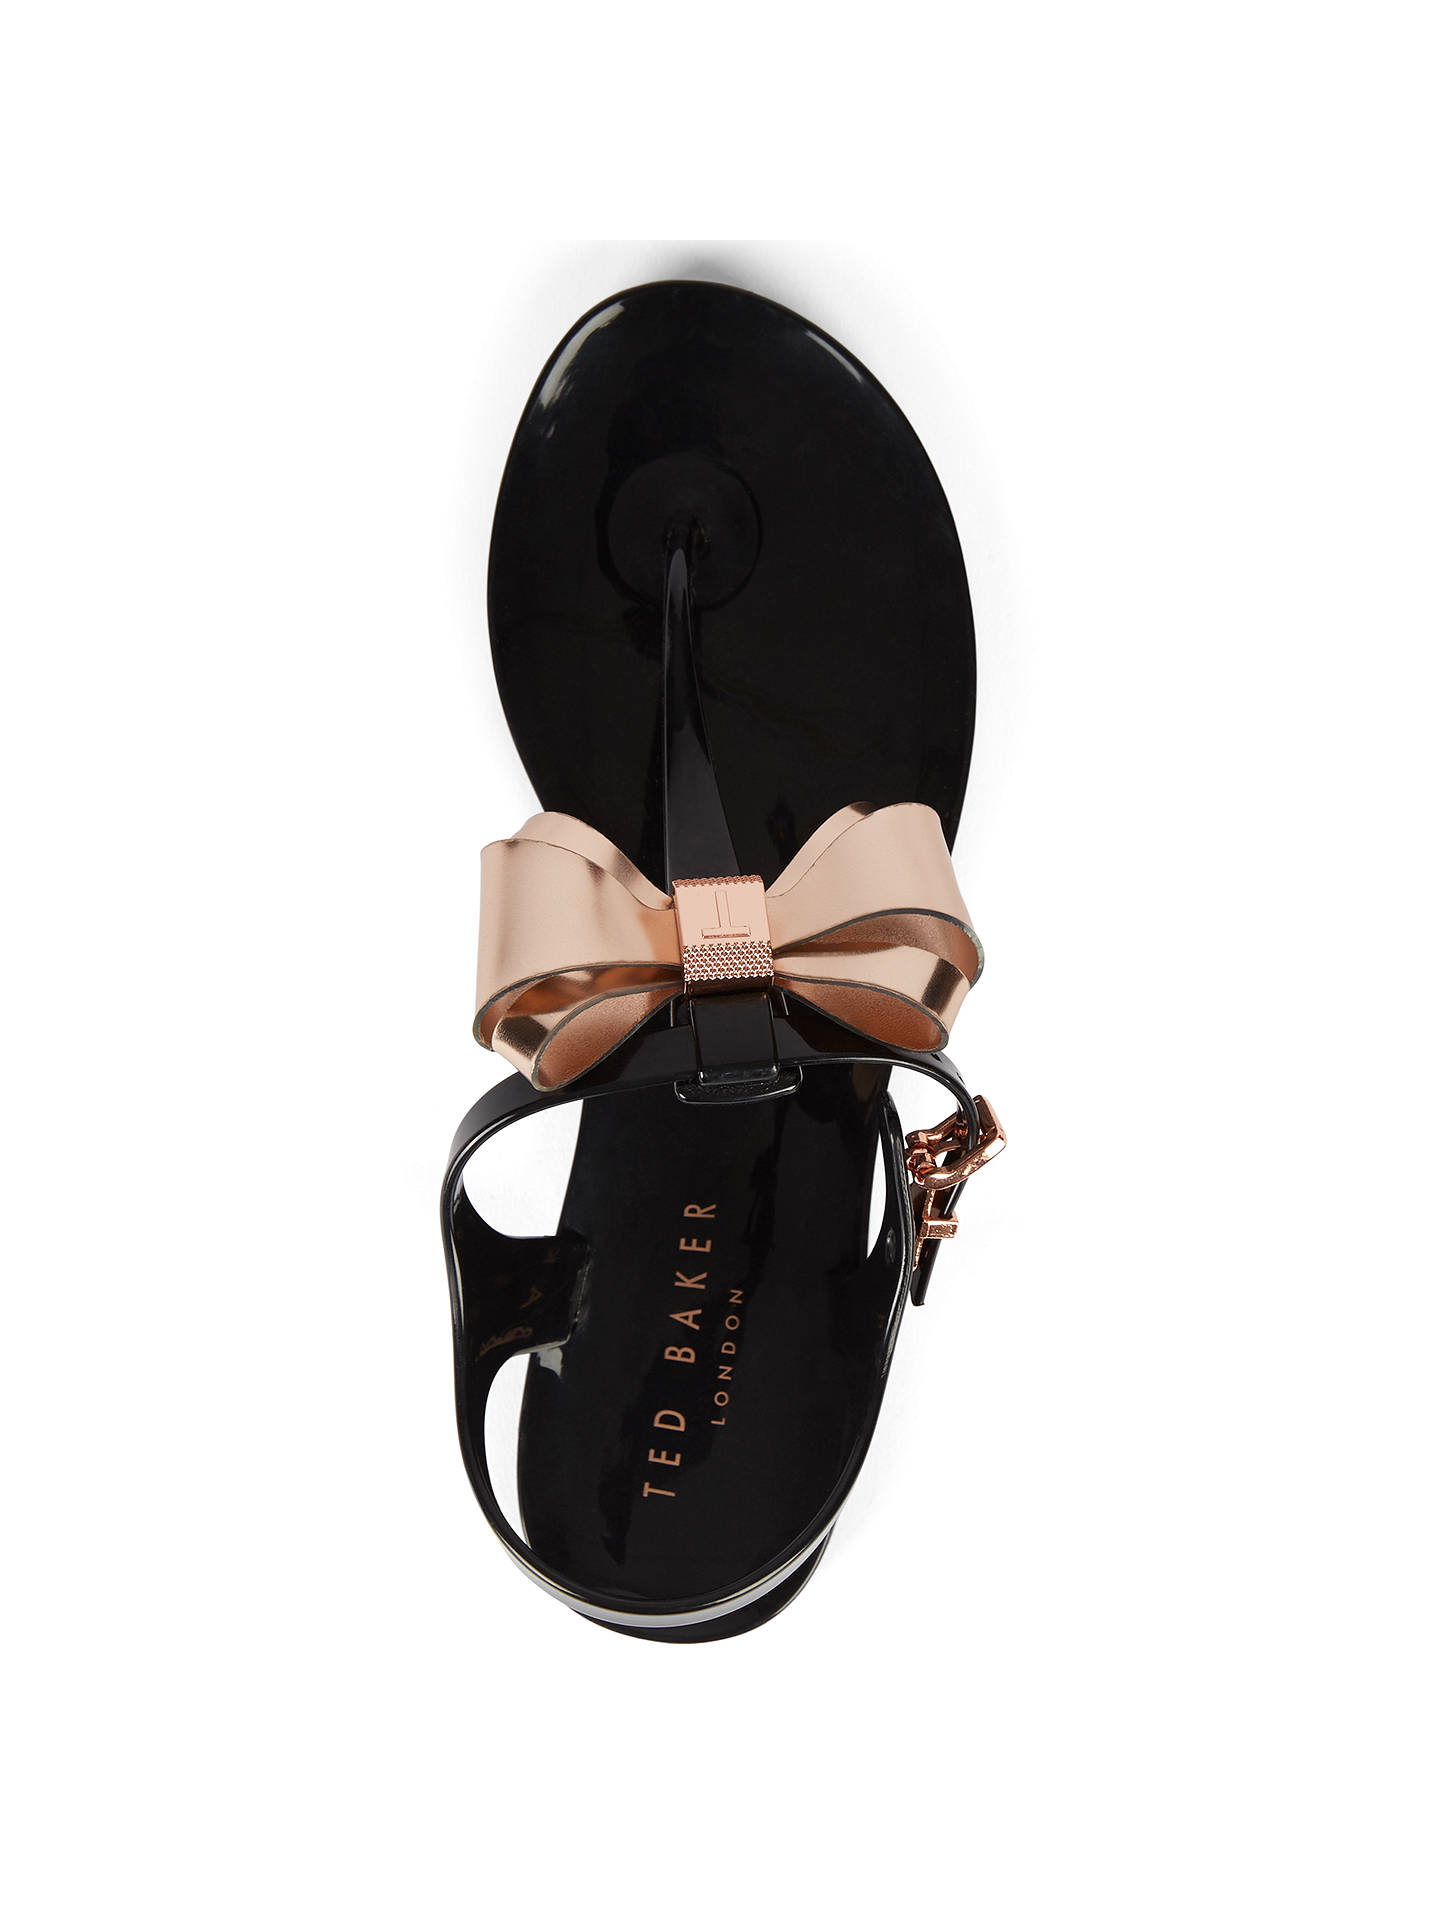 8d2a4be2d Ted Baker Ainda Bow Toe Post Sandals at John Lewis   Partners